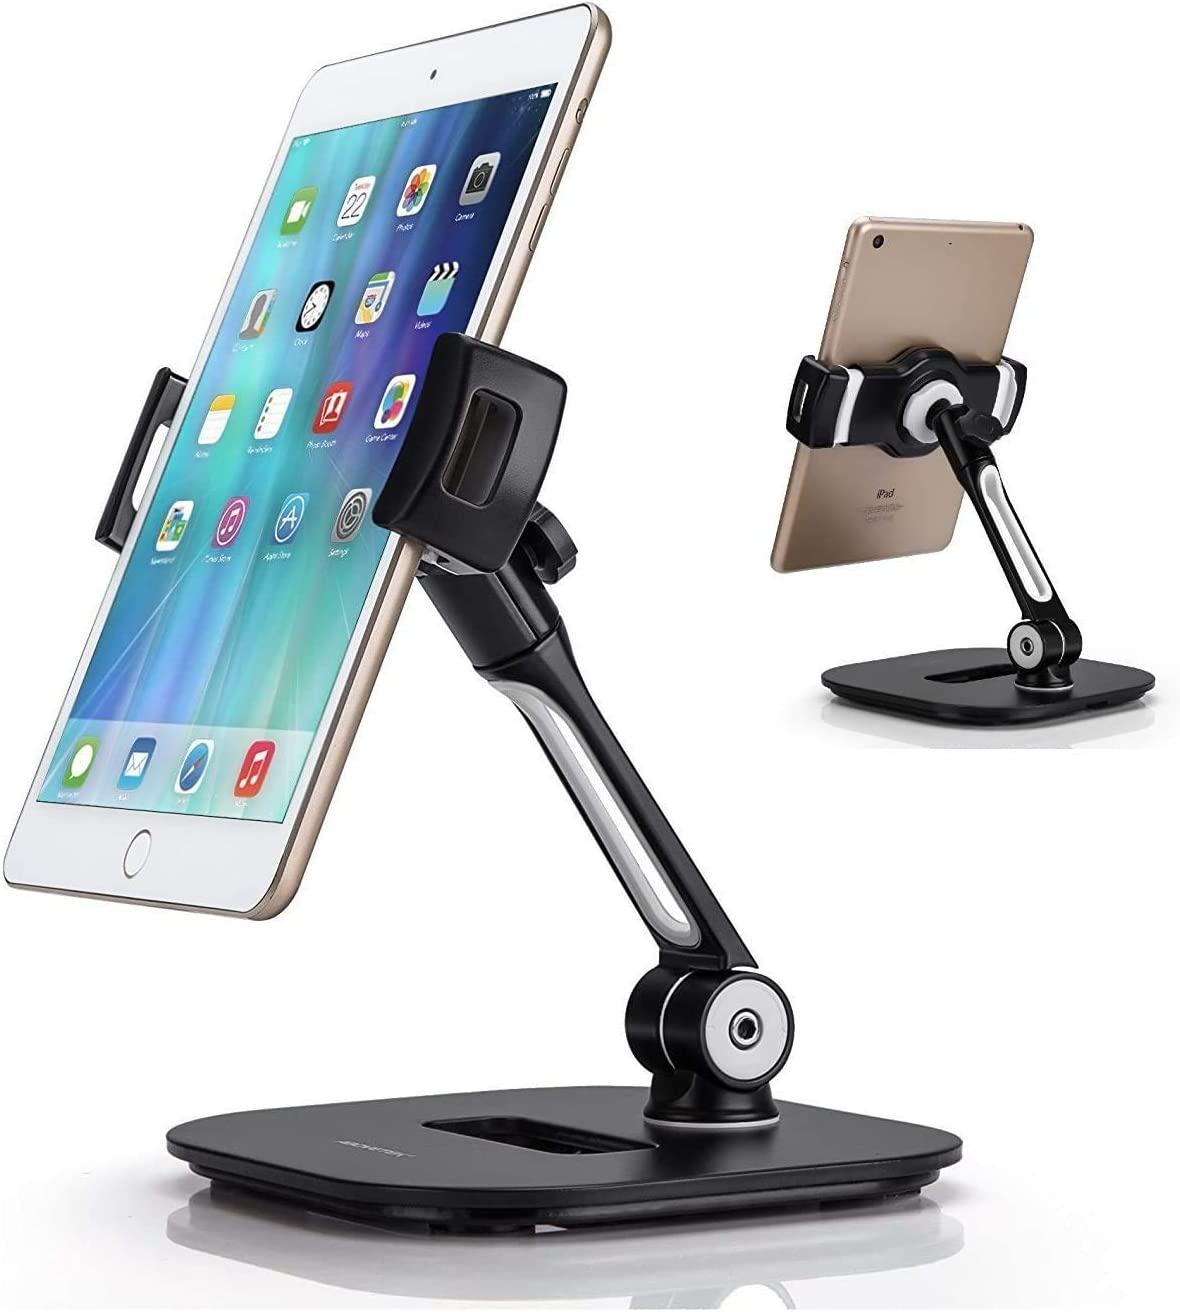 "AboveTEK Stylish Aluminum Tablet Stand fits 4-11"" Tablets/Smartphones & Bracket Tablet Holder for 5.5-13.5"" Tablet & Phone"